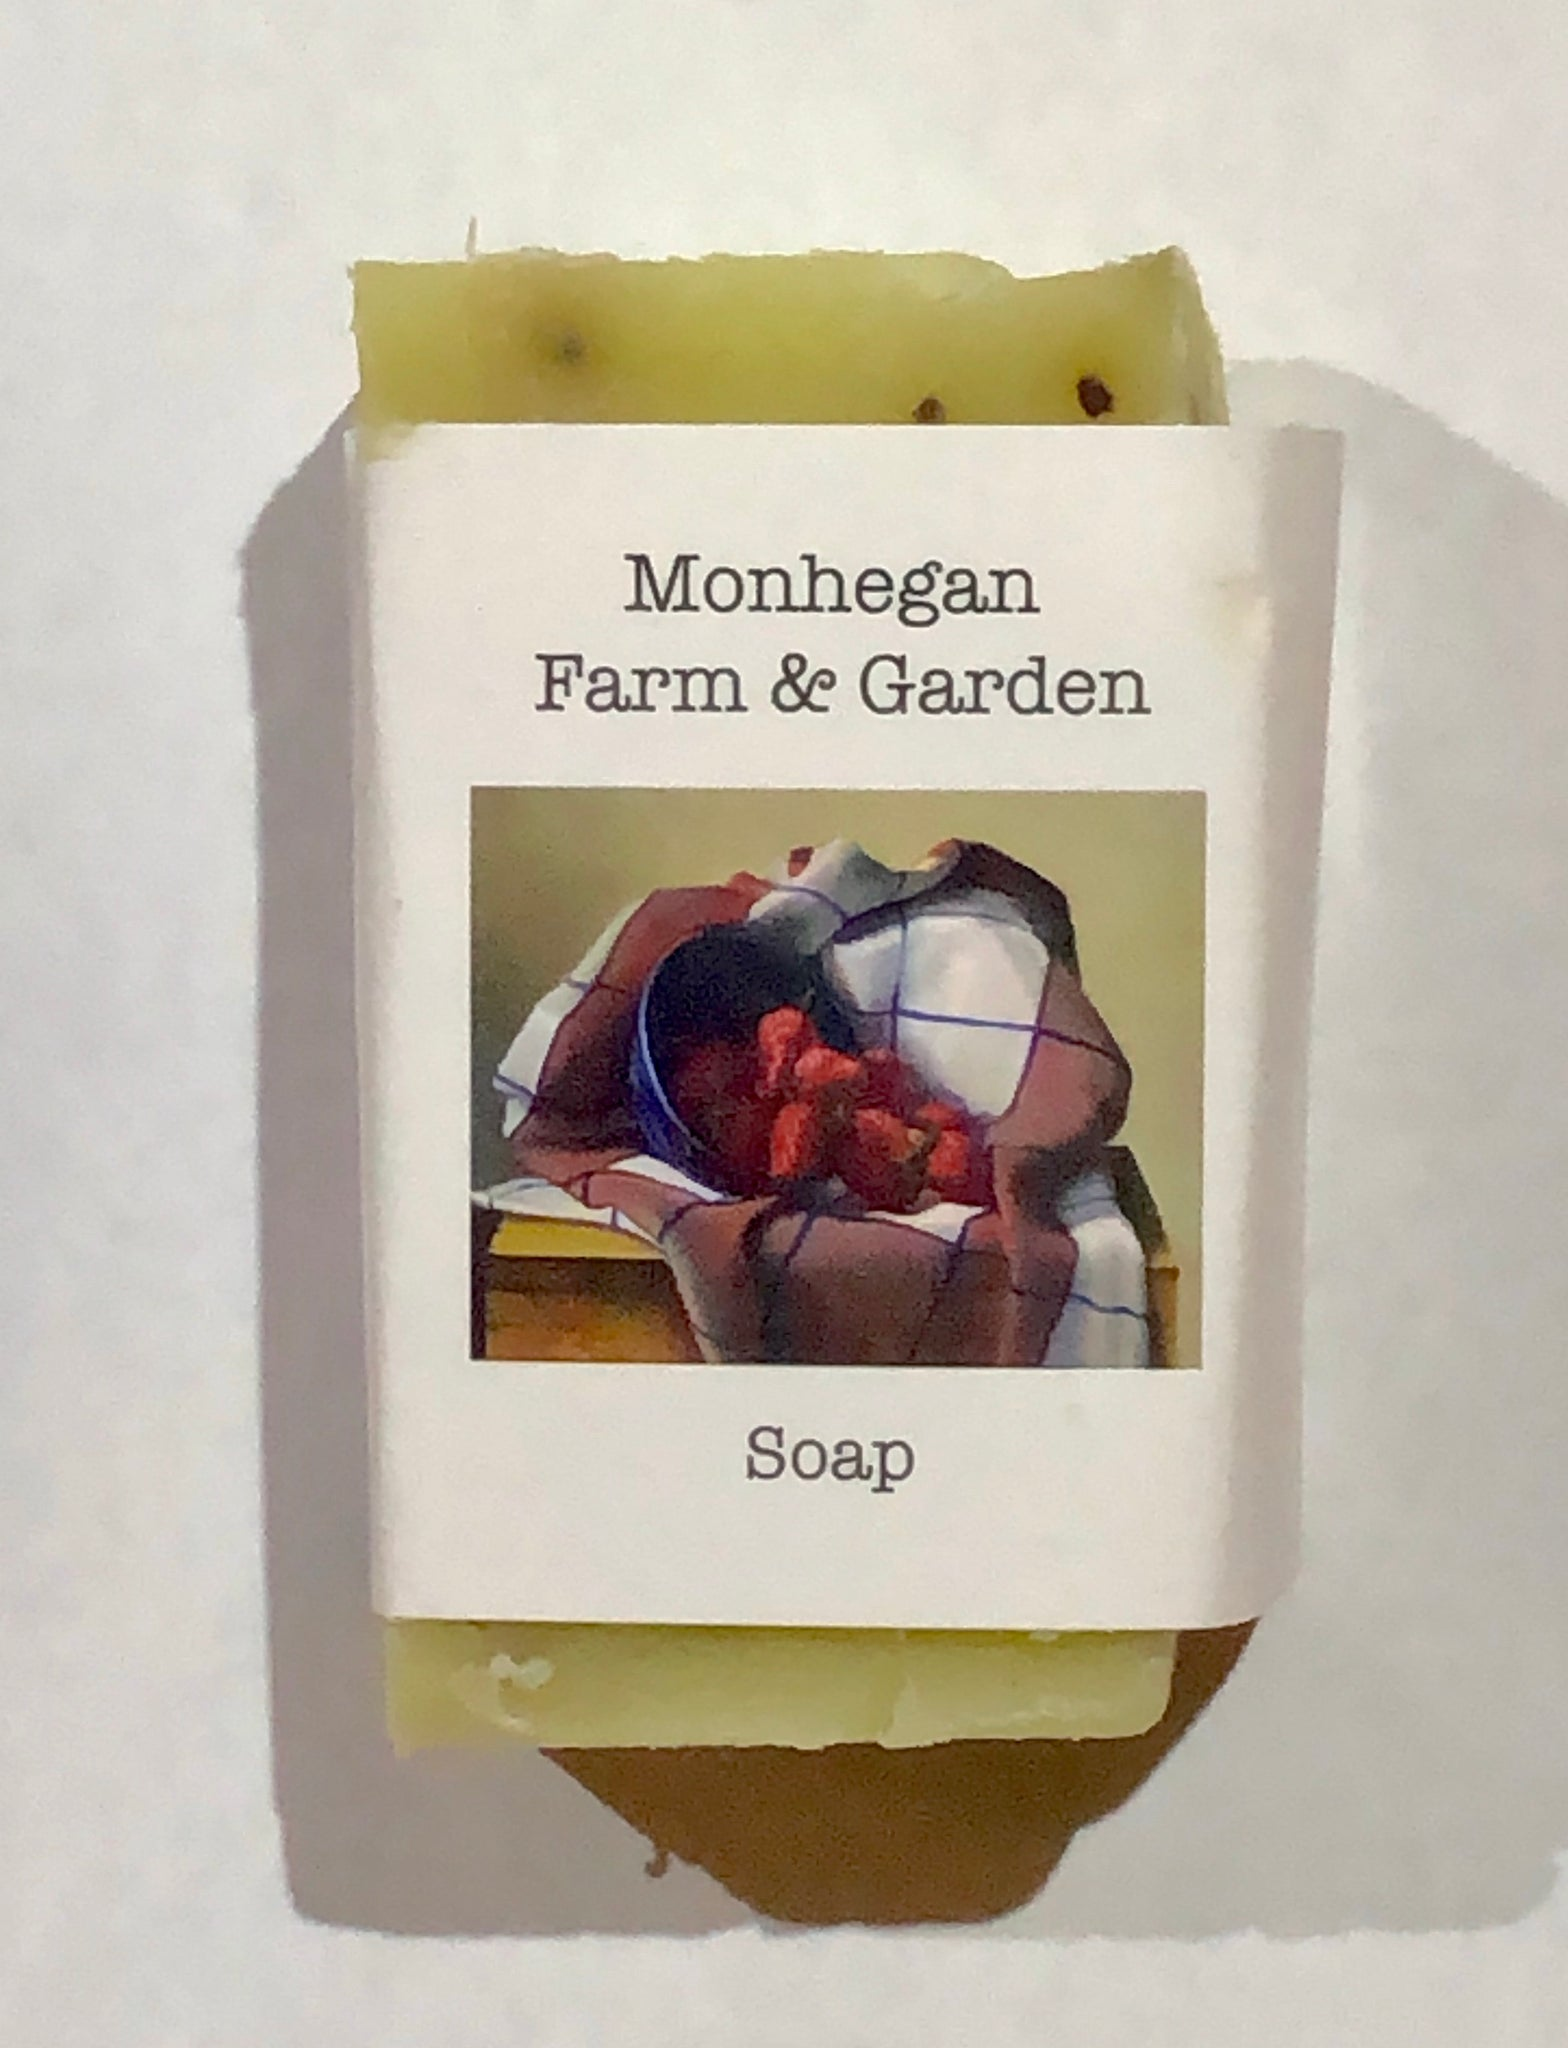 Soap-Monhegan Farm & Garden!